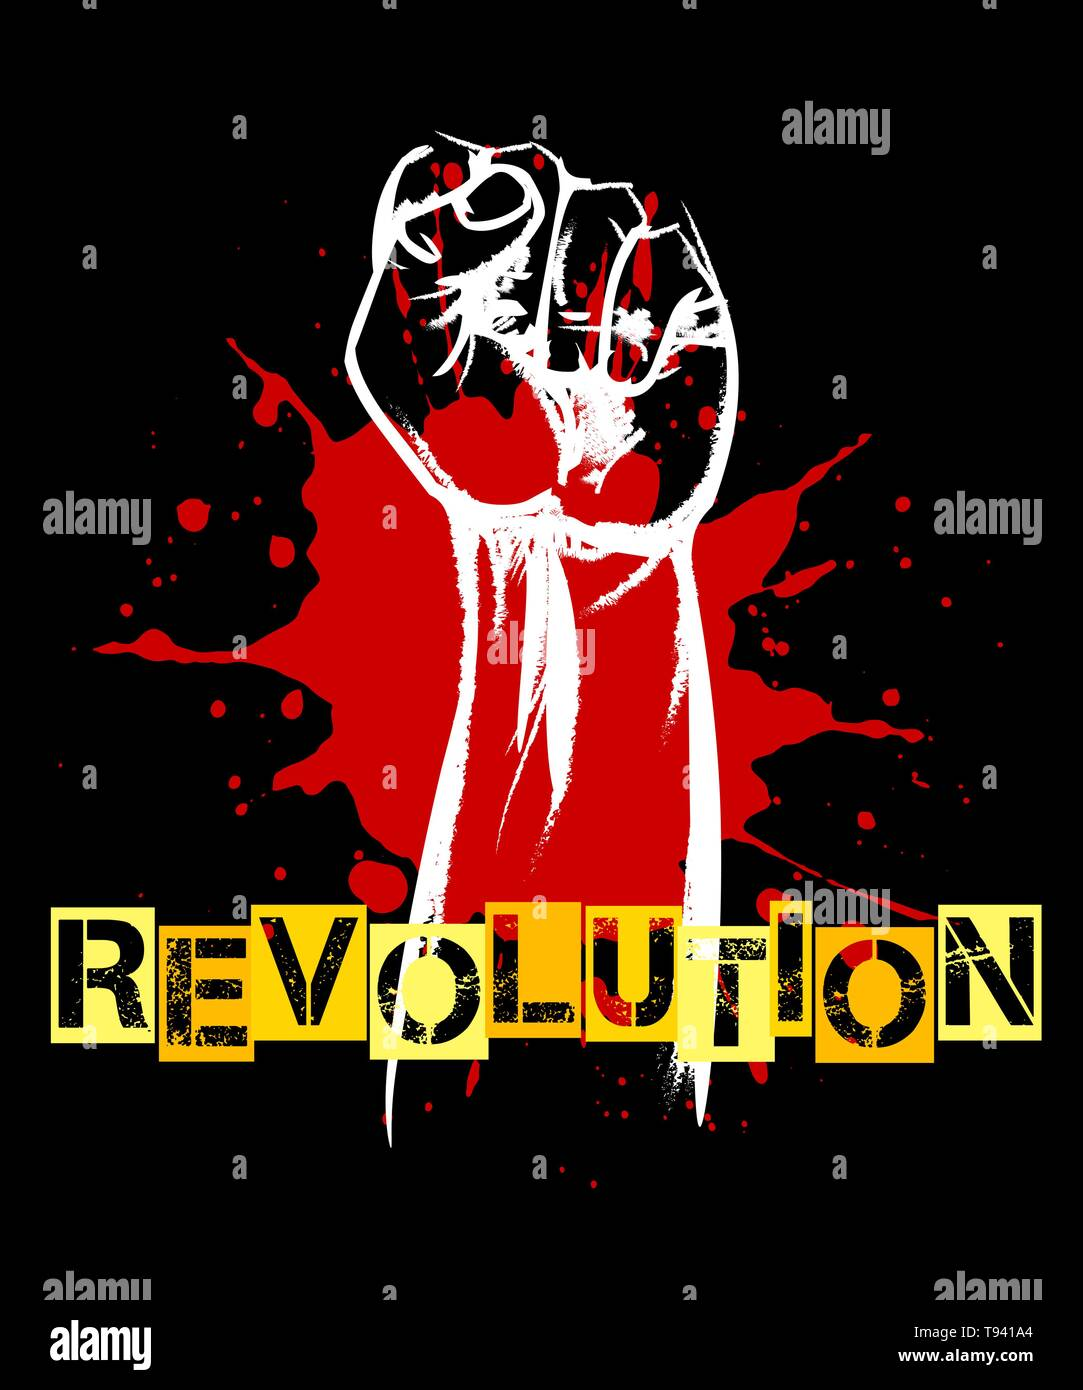 Revolution or resistance Retro poster. Raised fist and blood splat on black. Vector illustration. - Stock Vector